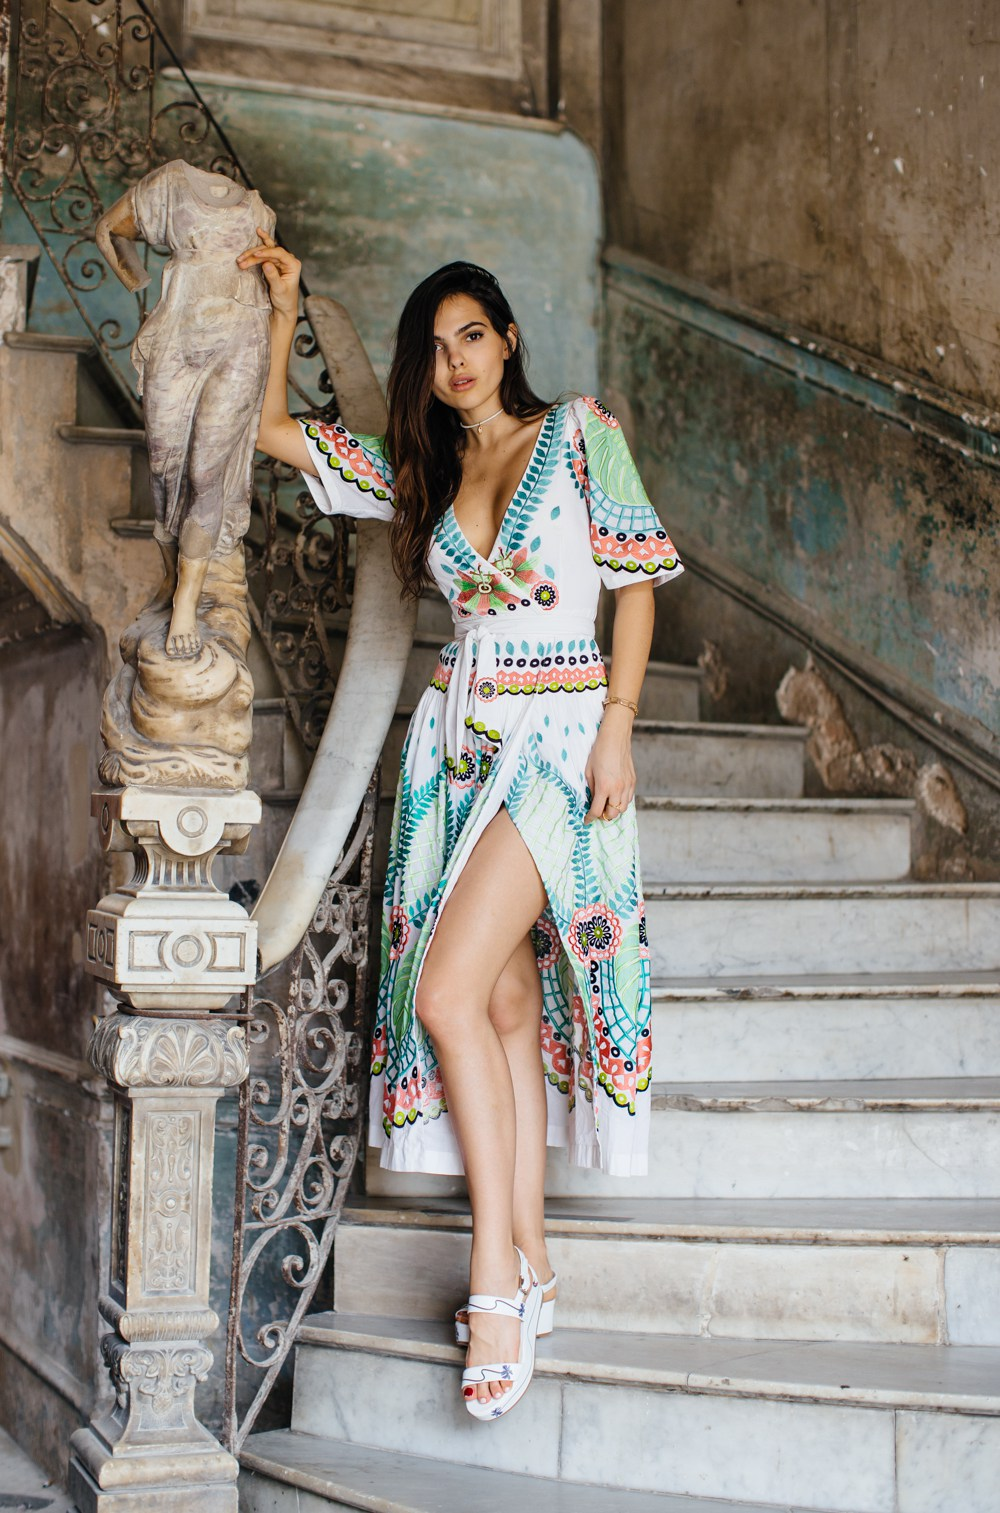 doina-ciobanu-la-guarida-fashion-travel-diary-havana-13